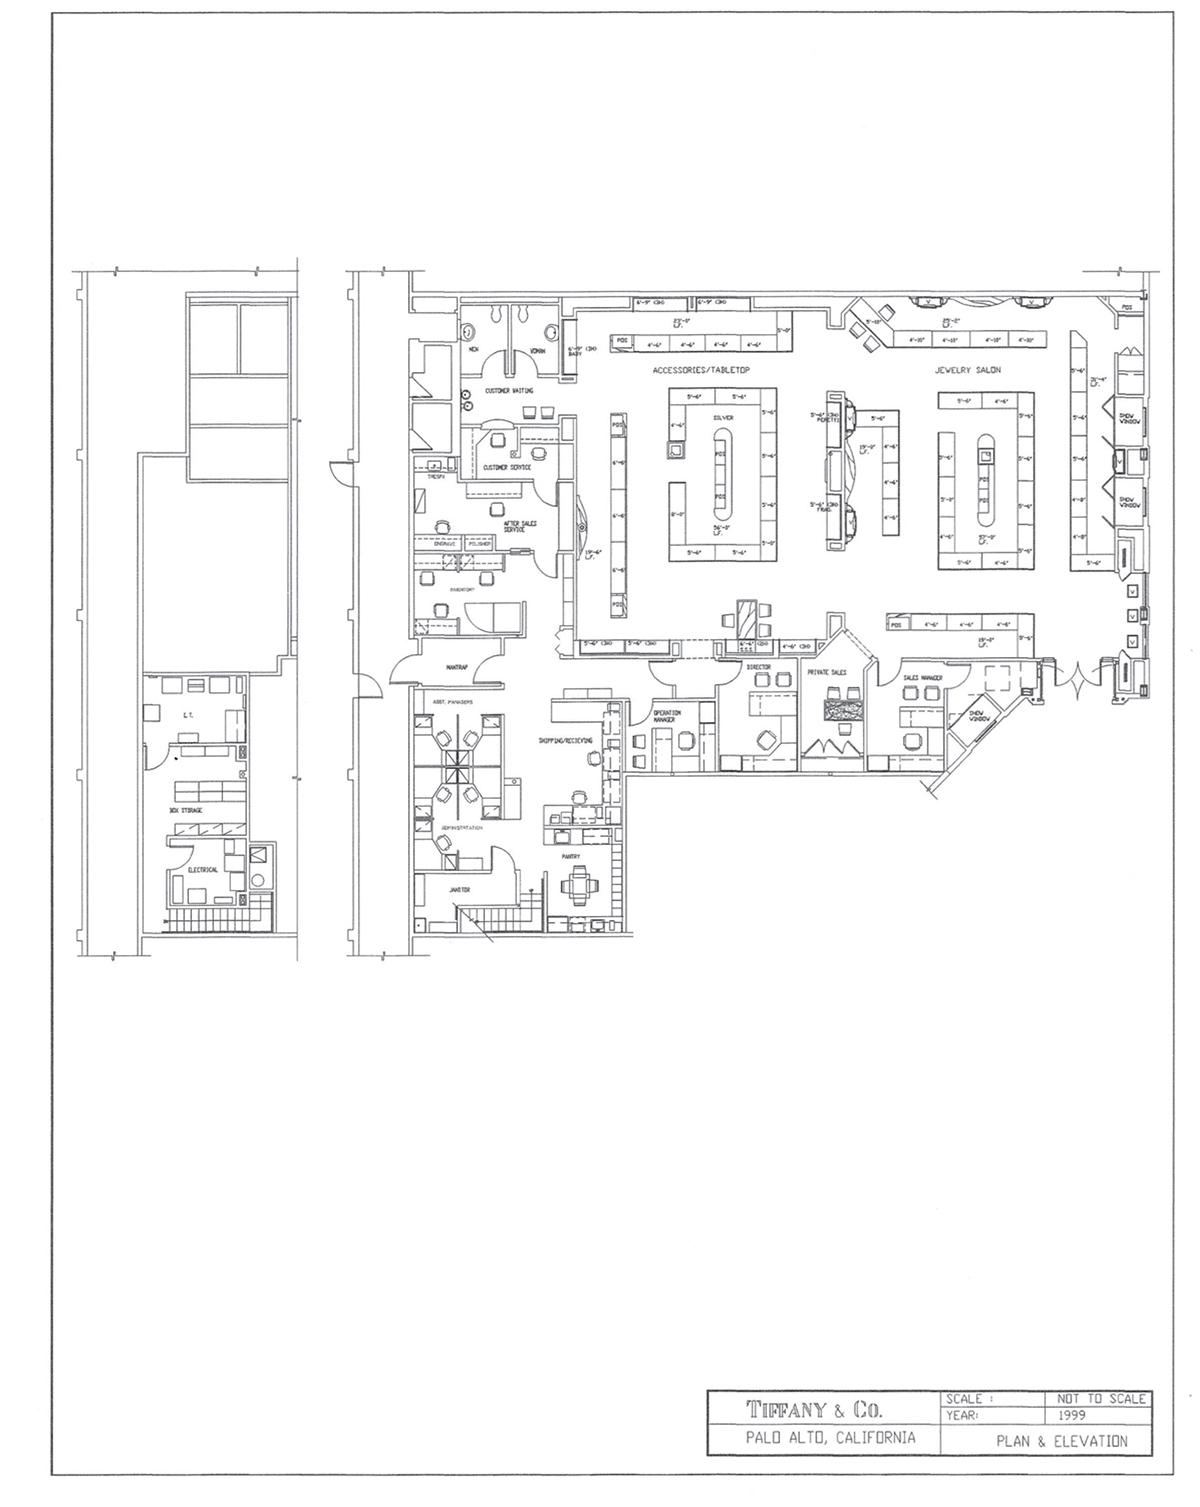 Floorplan Drawings For The Tiffany U0026 Co. Store In The Stanford Shopping  Center In Palo Alto, California.